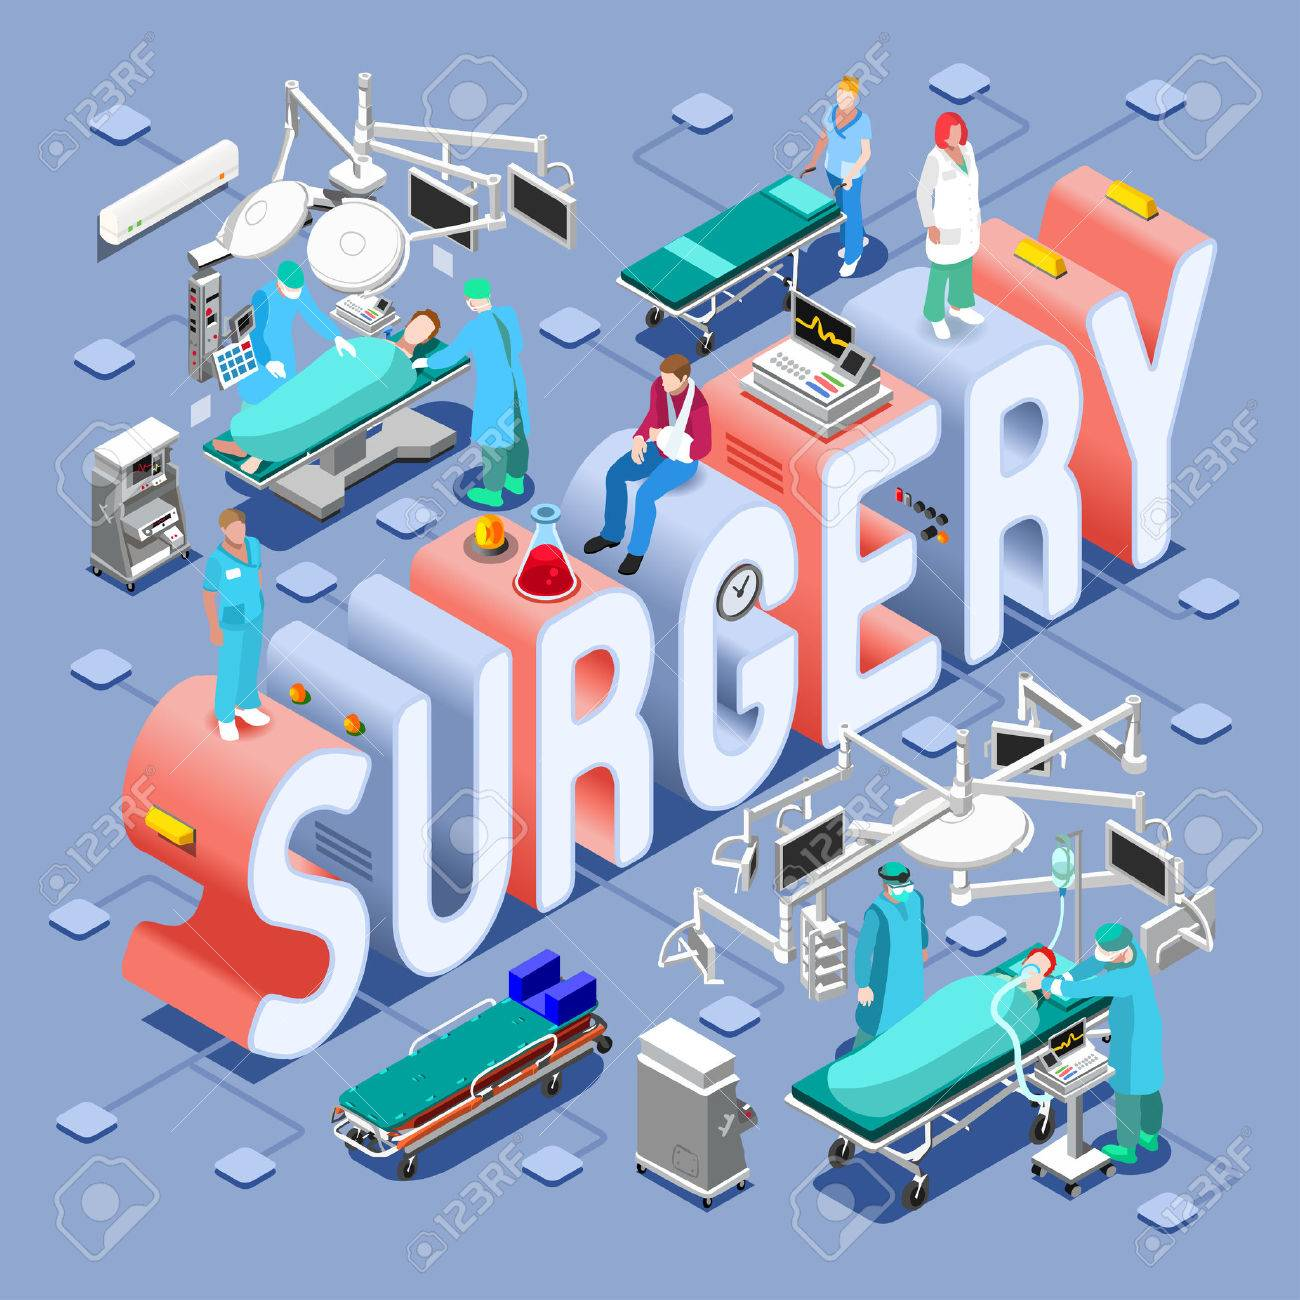 Surgery Healthcare Concept. Clinic Hospital Departments Symbols and People NEW bright palette 3D Flat Vector Set. Patients Doctors Nurses Scrubs Staff and Support Workers - 51805229